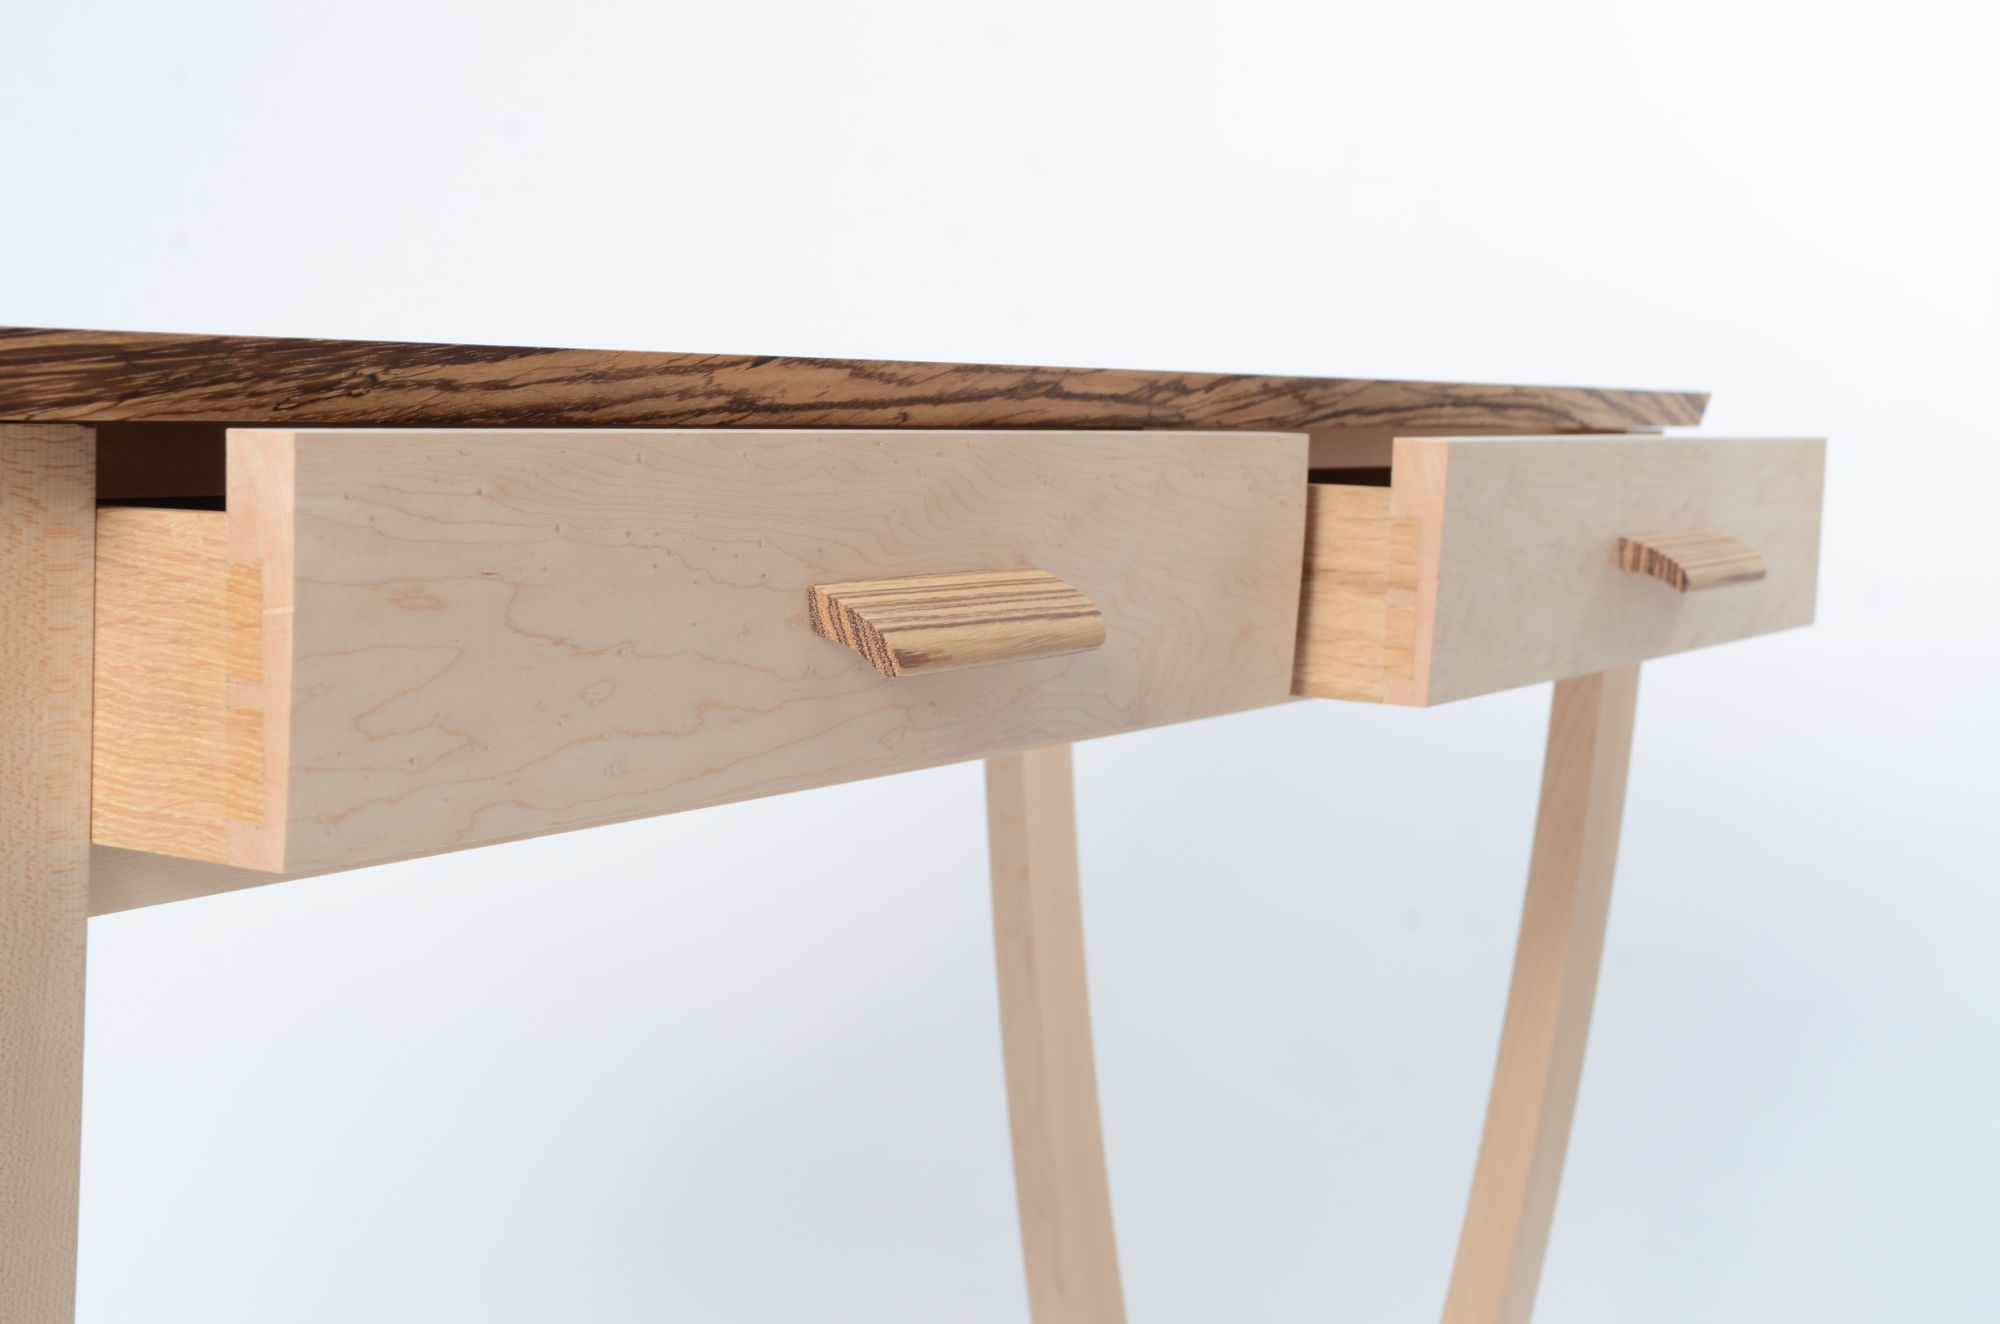 Dovetailed drawer in maple